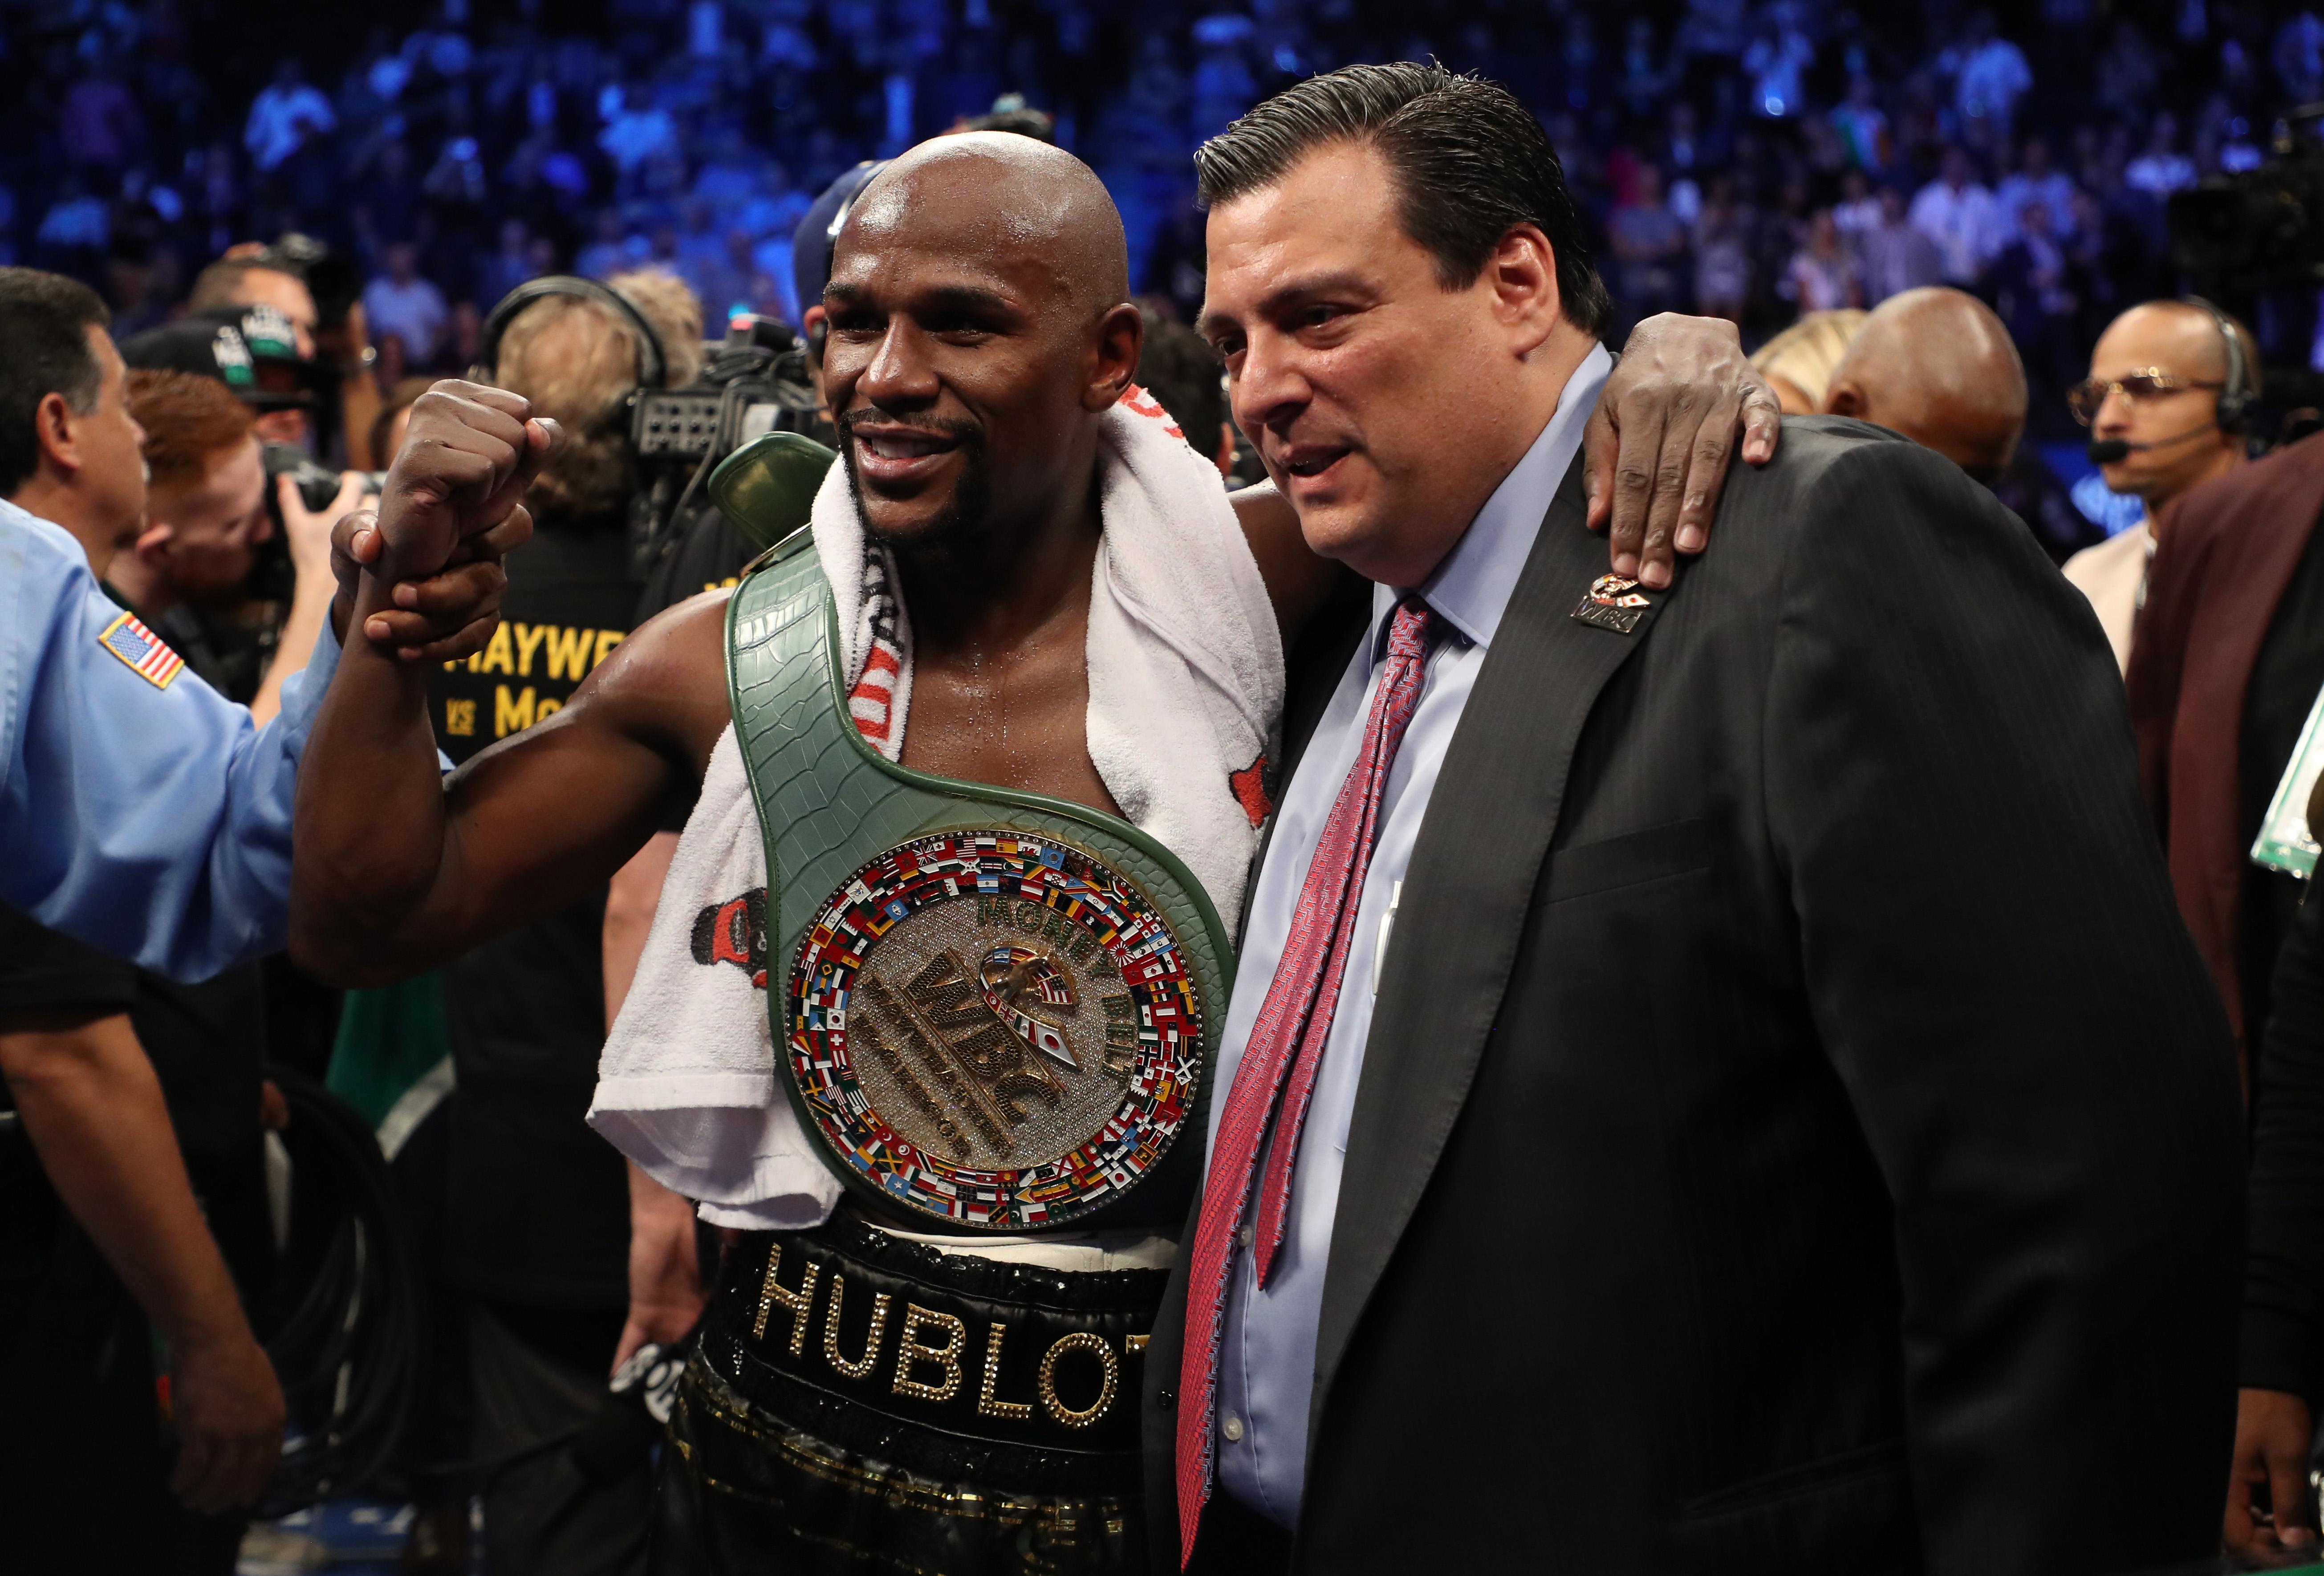 Floyd Mayweather Jr. celebrates with WBC President Mauricio Sulaiman and the WBC Money Belt after his TKO of Conor McGregor in their super welterweight boxing match